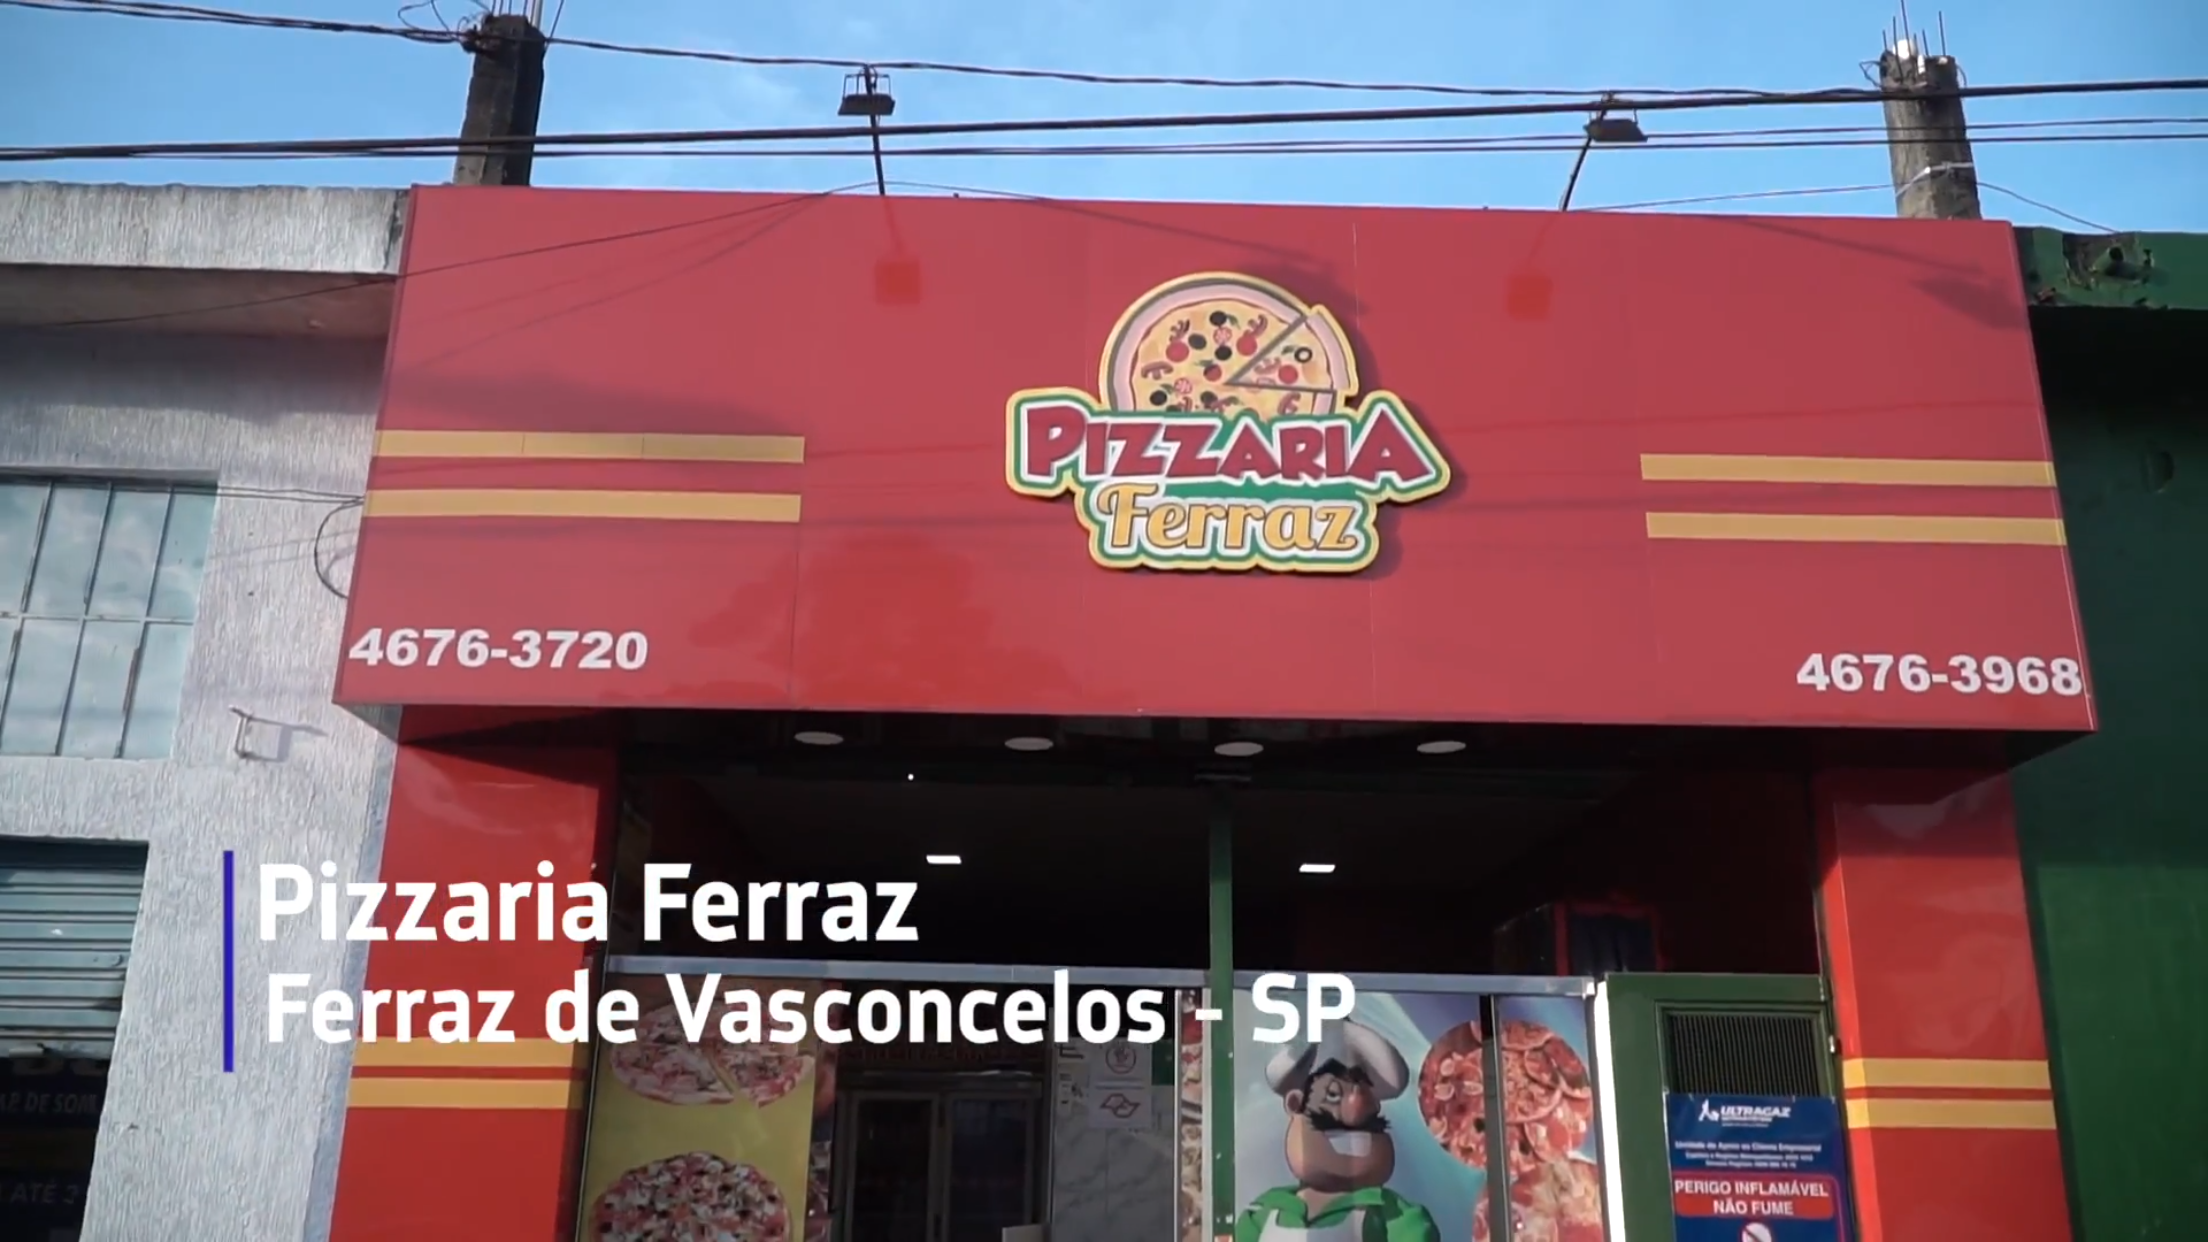 Pizzaria Ferraz